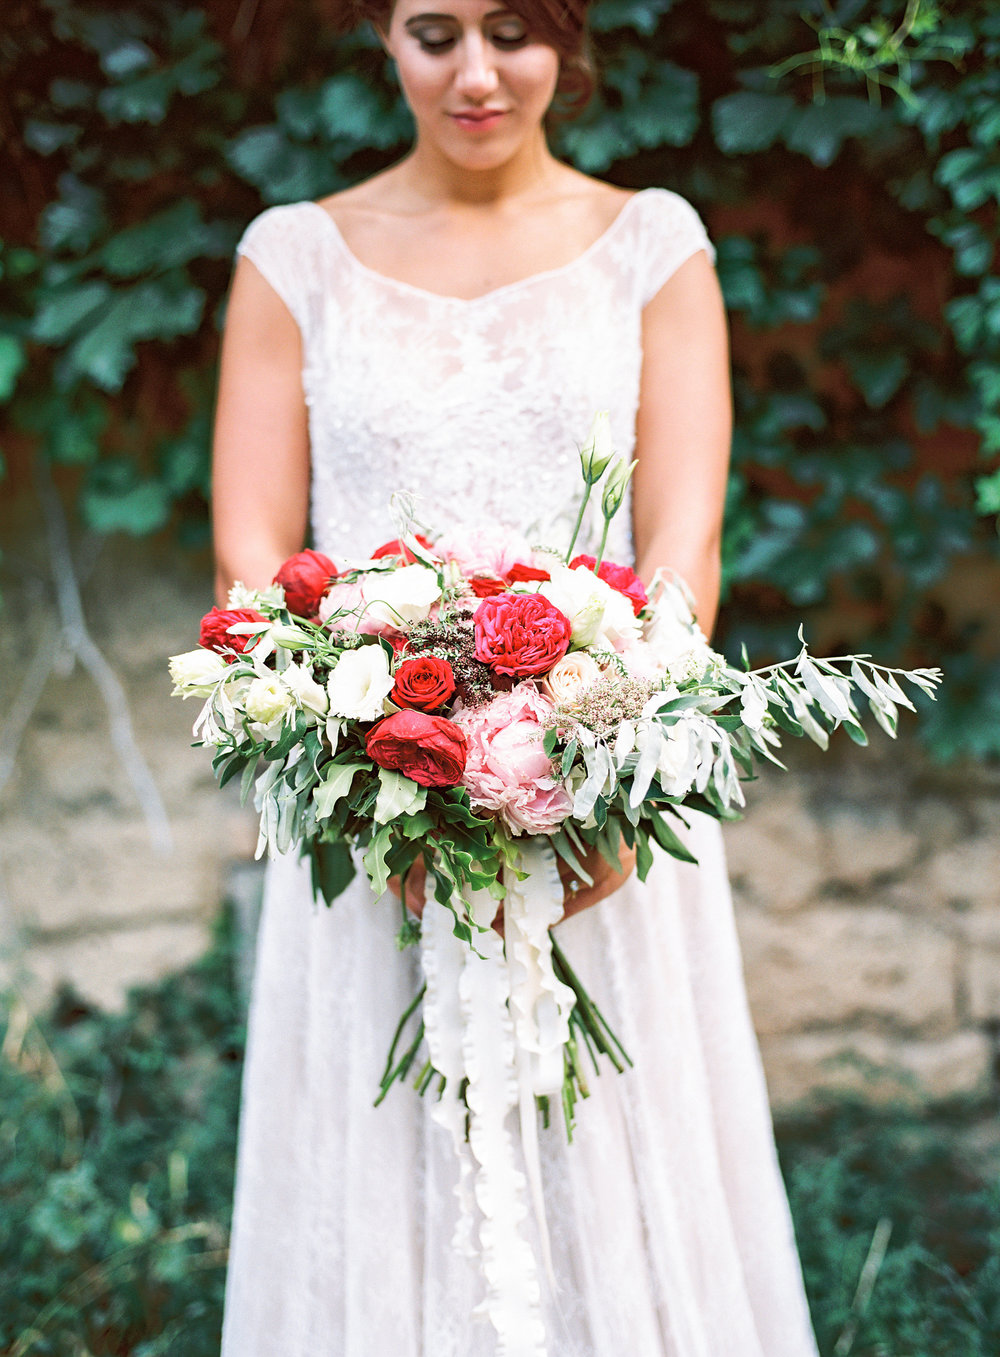 Romantic Botanical Wedding Inspiration